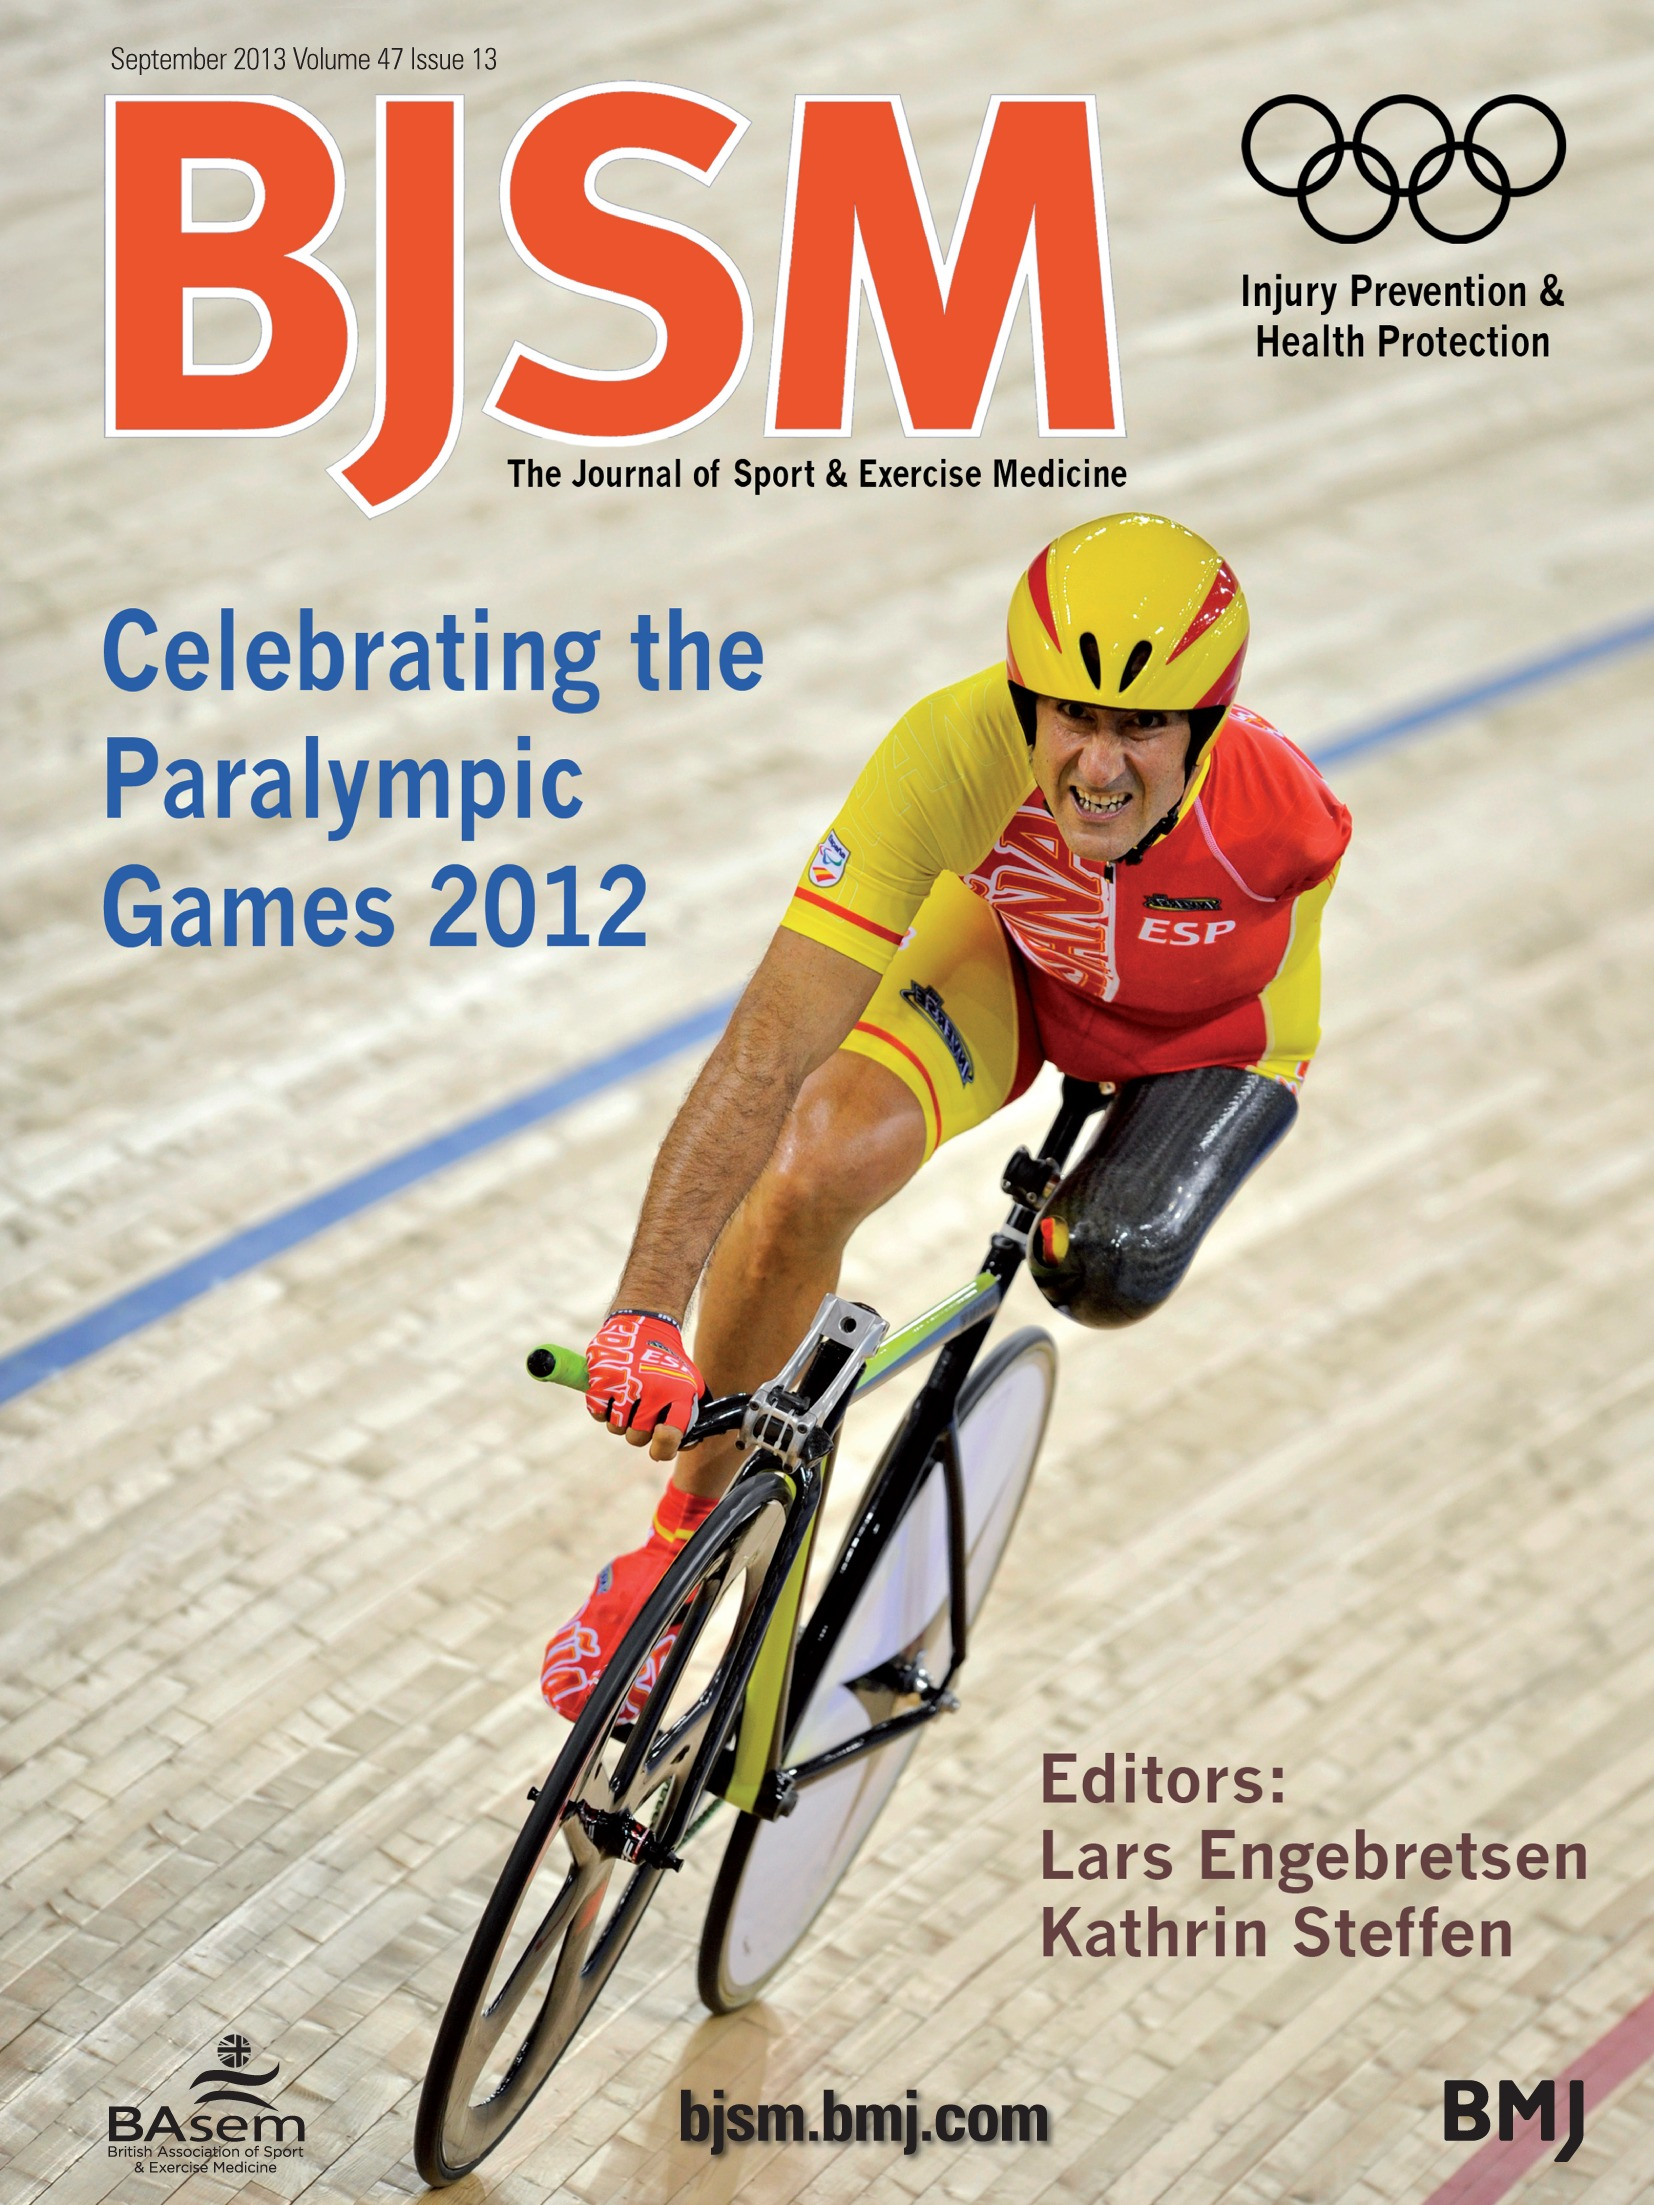 research paper on sports medicine Editorial policies and instructions for authors looking to publish their work in british journal of sports medicine all authors of research papers will have.